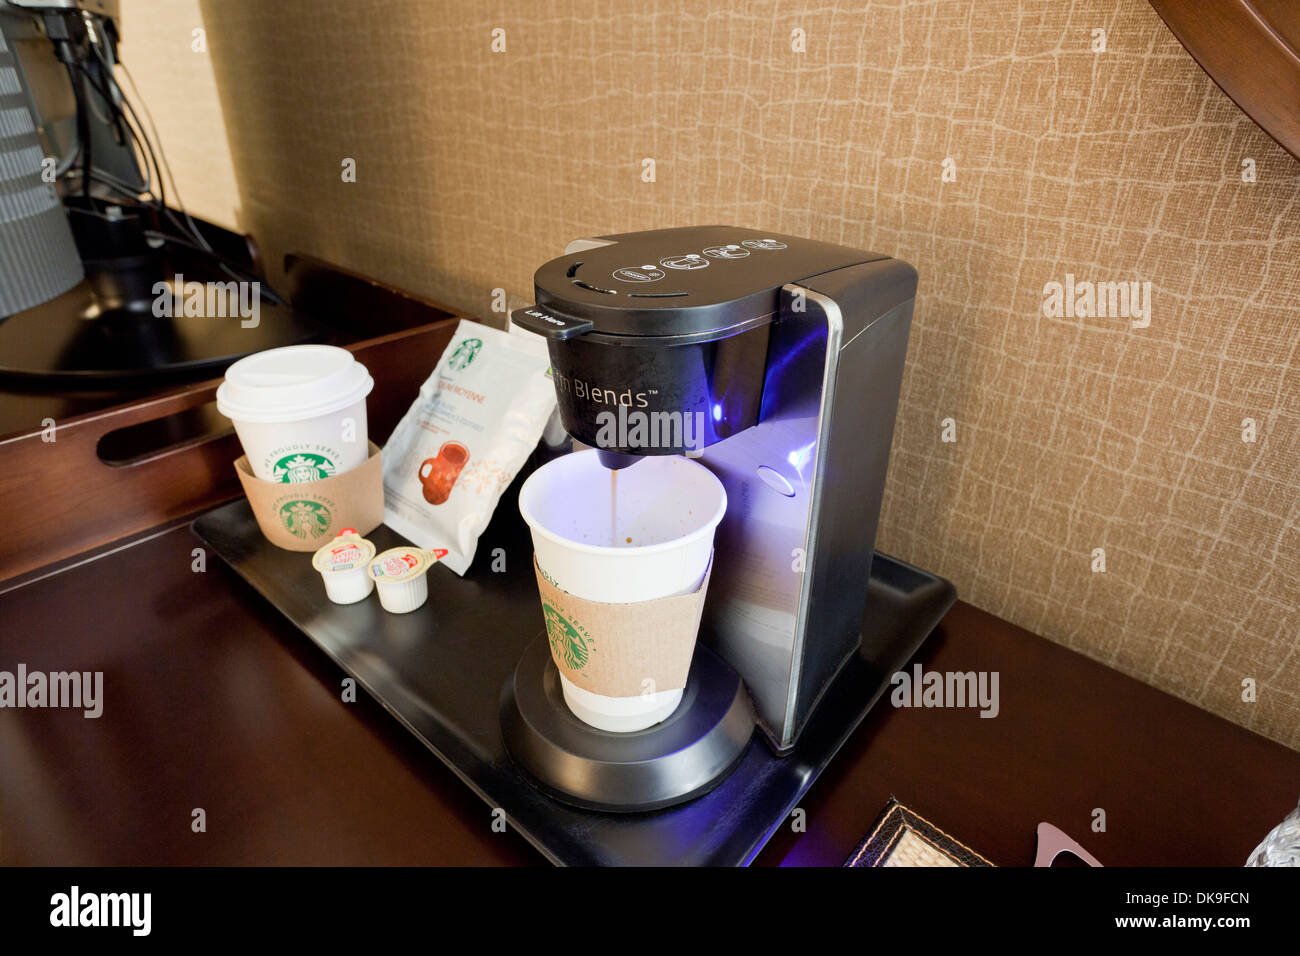 Hotel coffee maker - Stock Image